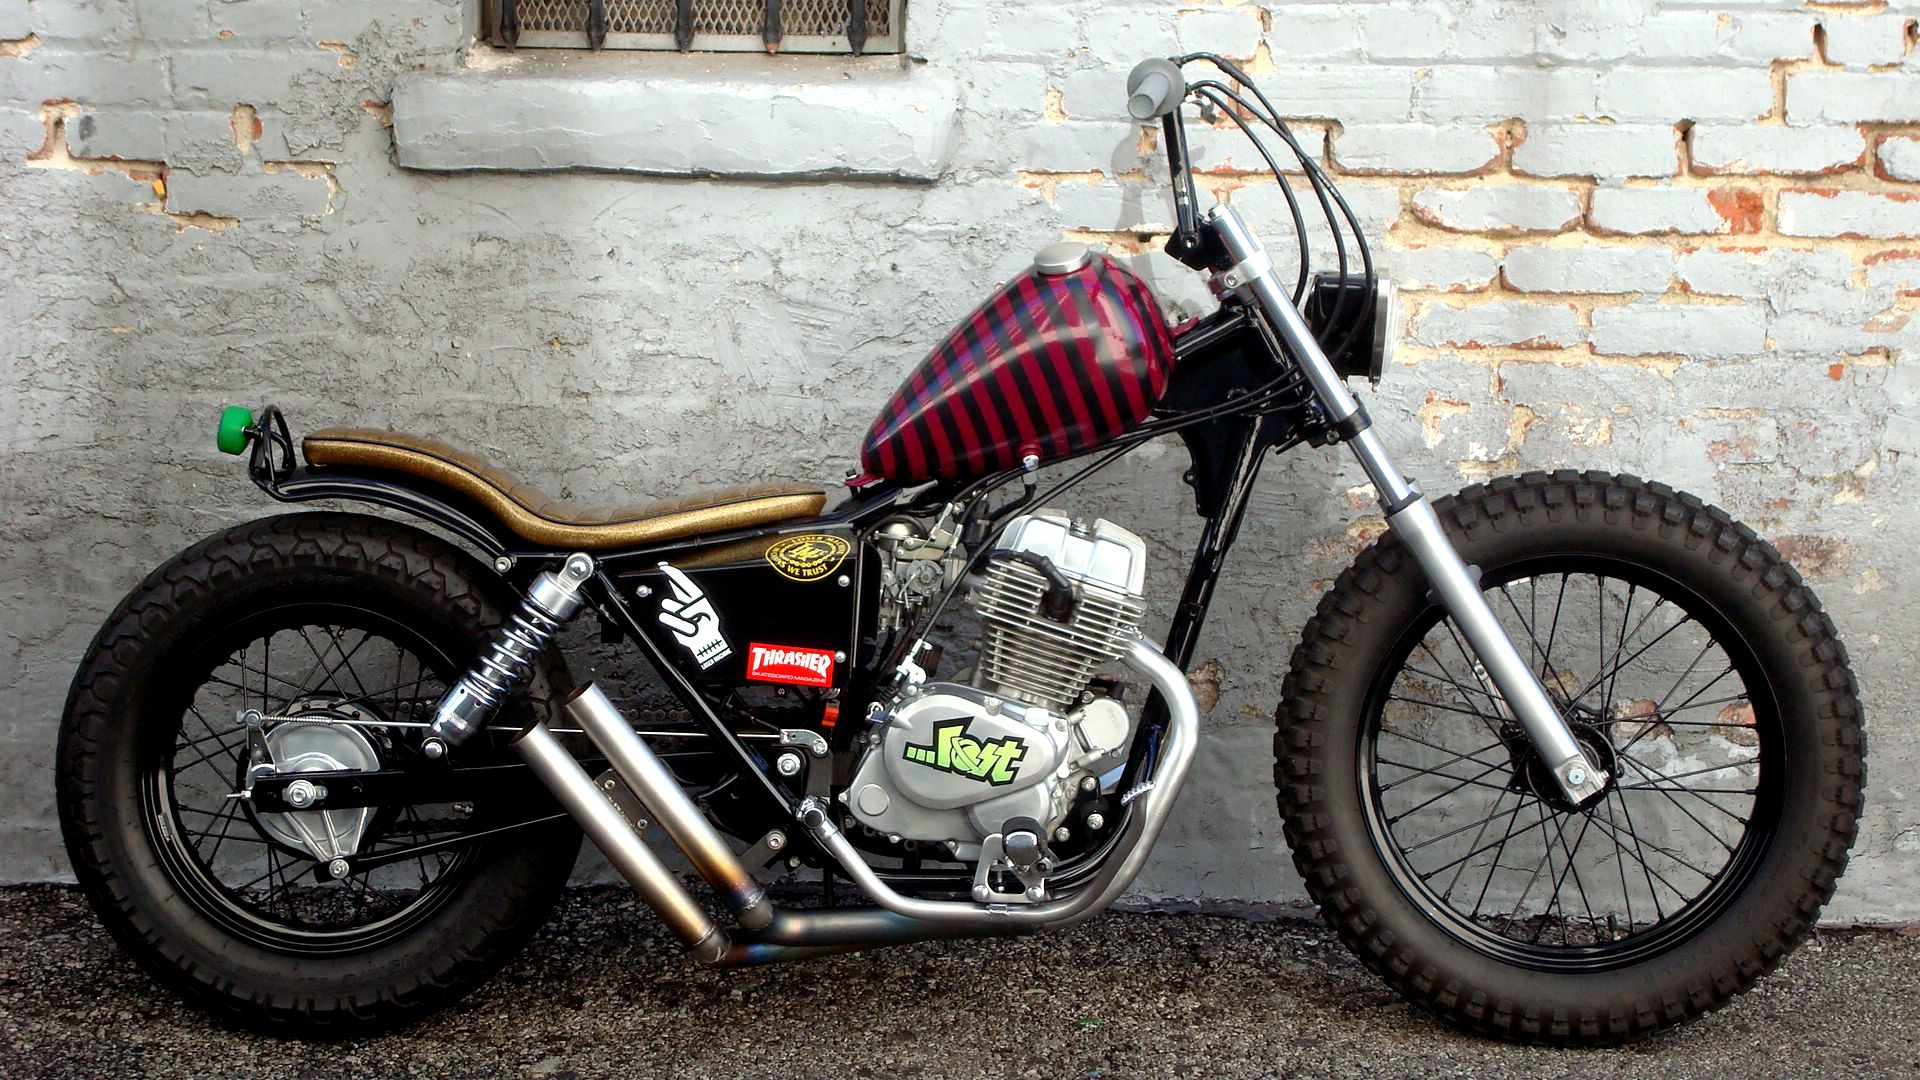 Honda Rebel Swingarm Custom With Red Black Striped Tank And Gold Flake Seat